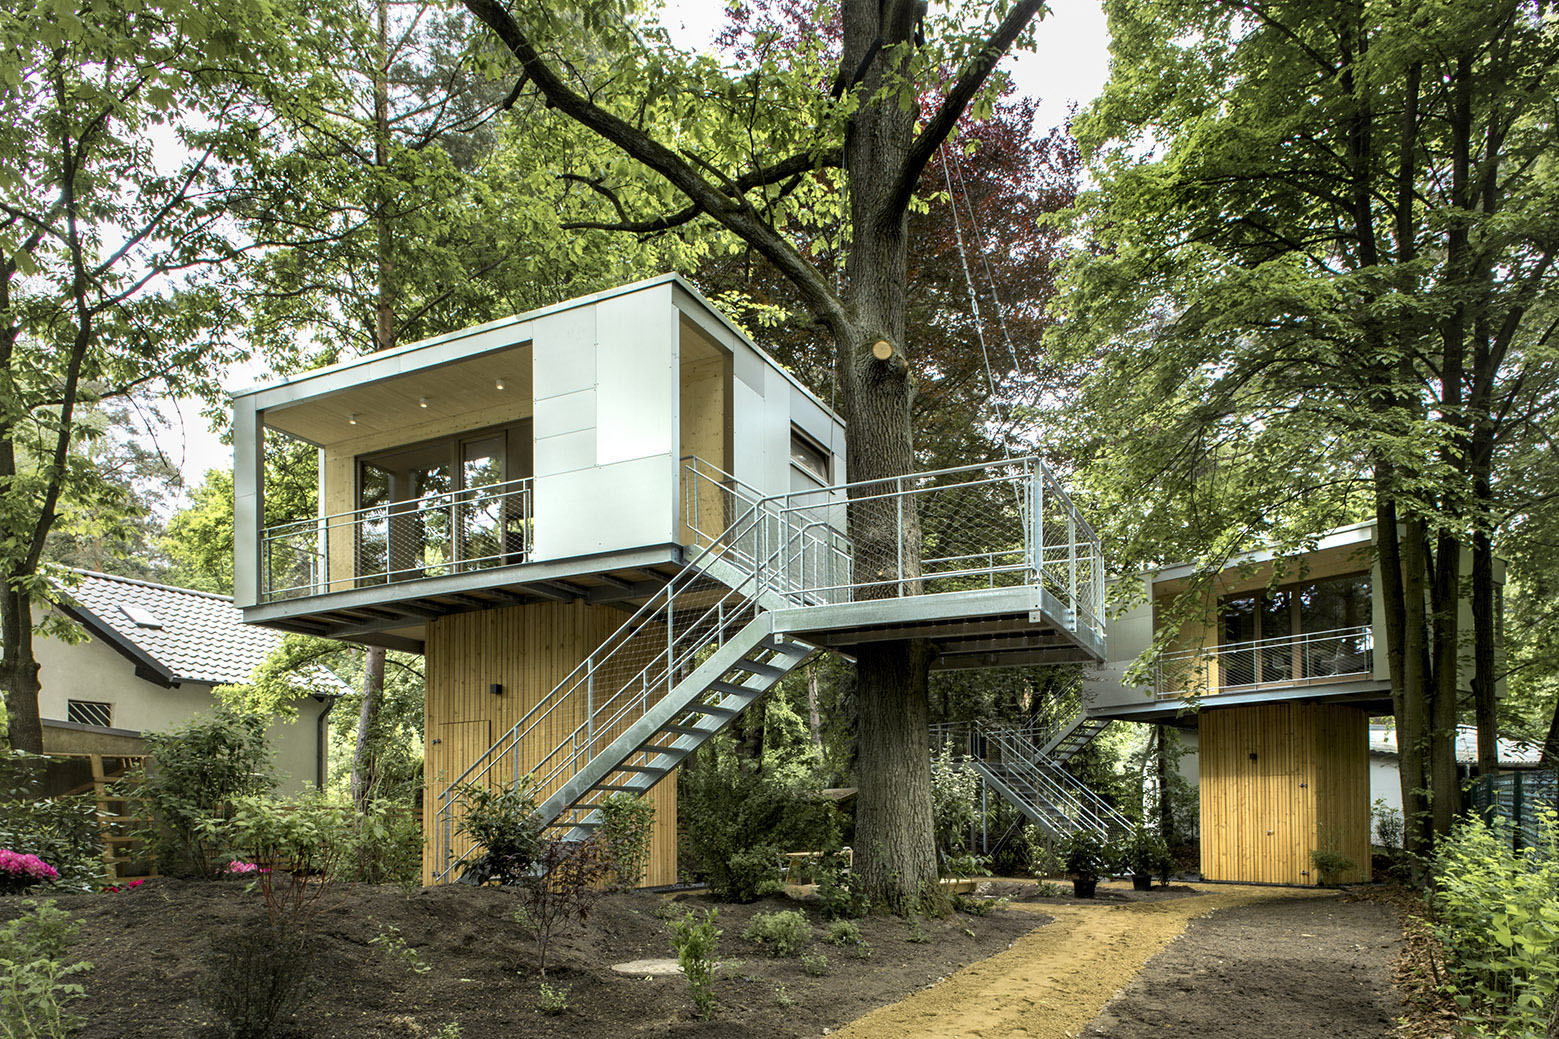 tiny treehouse urban oasis in berlin idesignarch